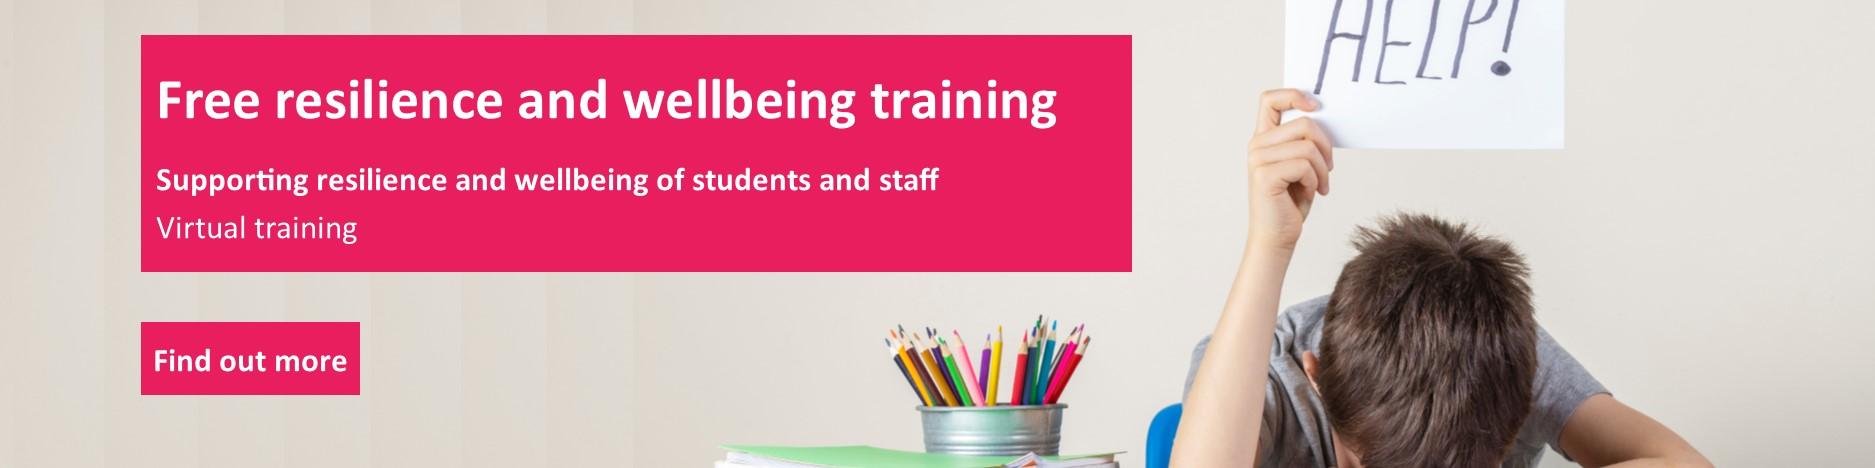 Resilience and wellbeing training